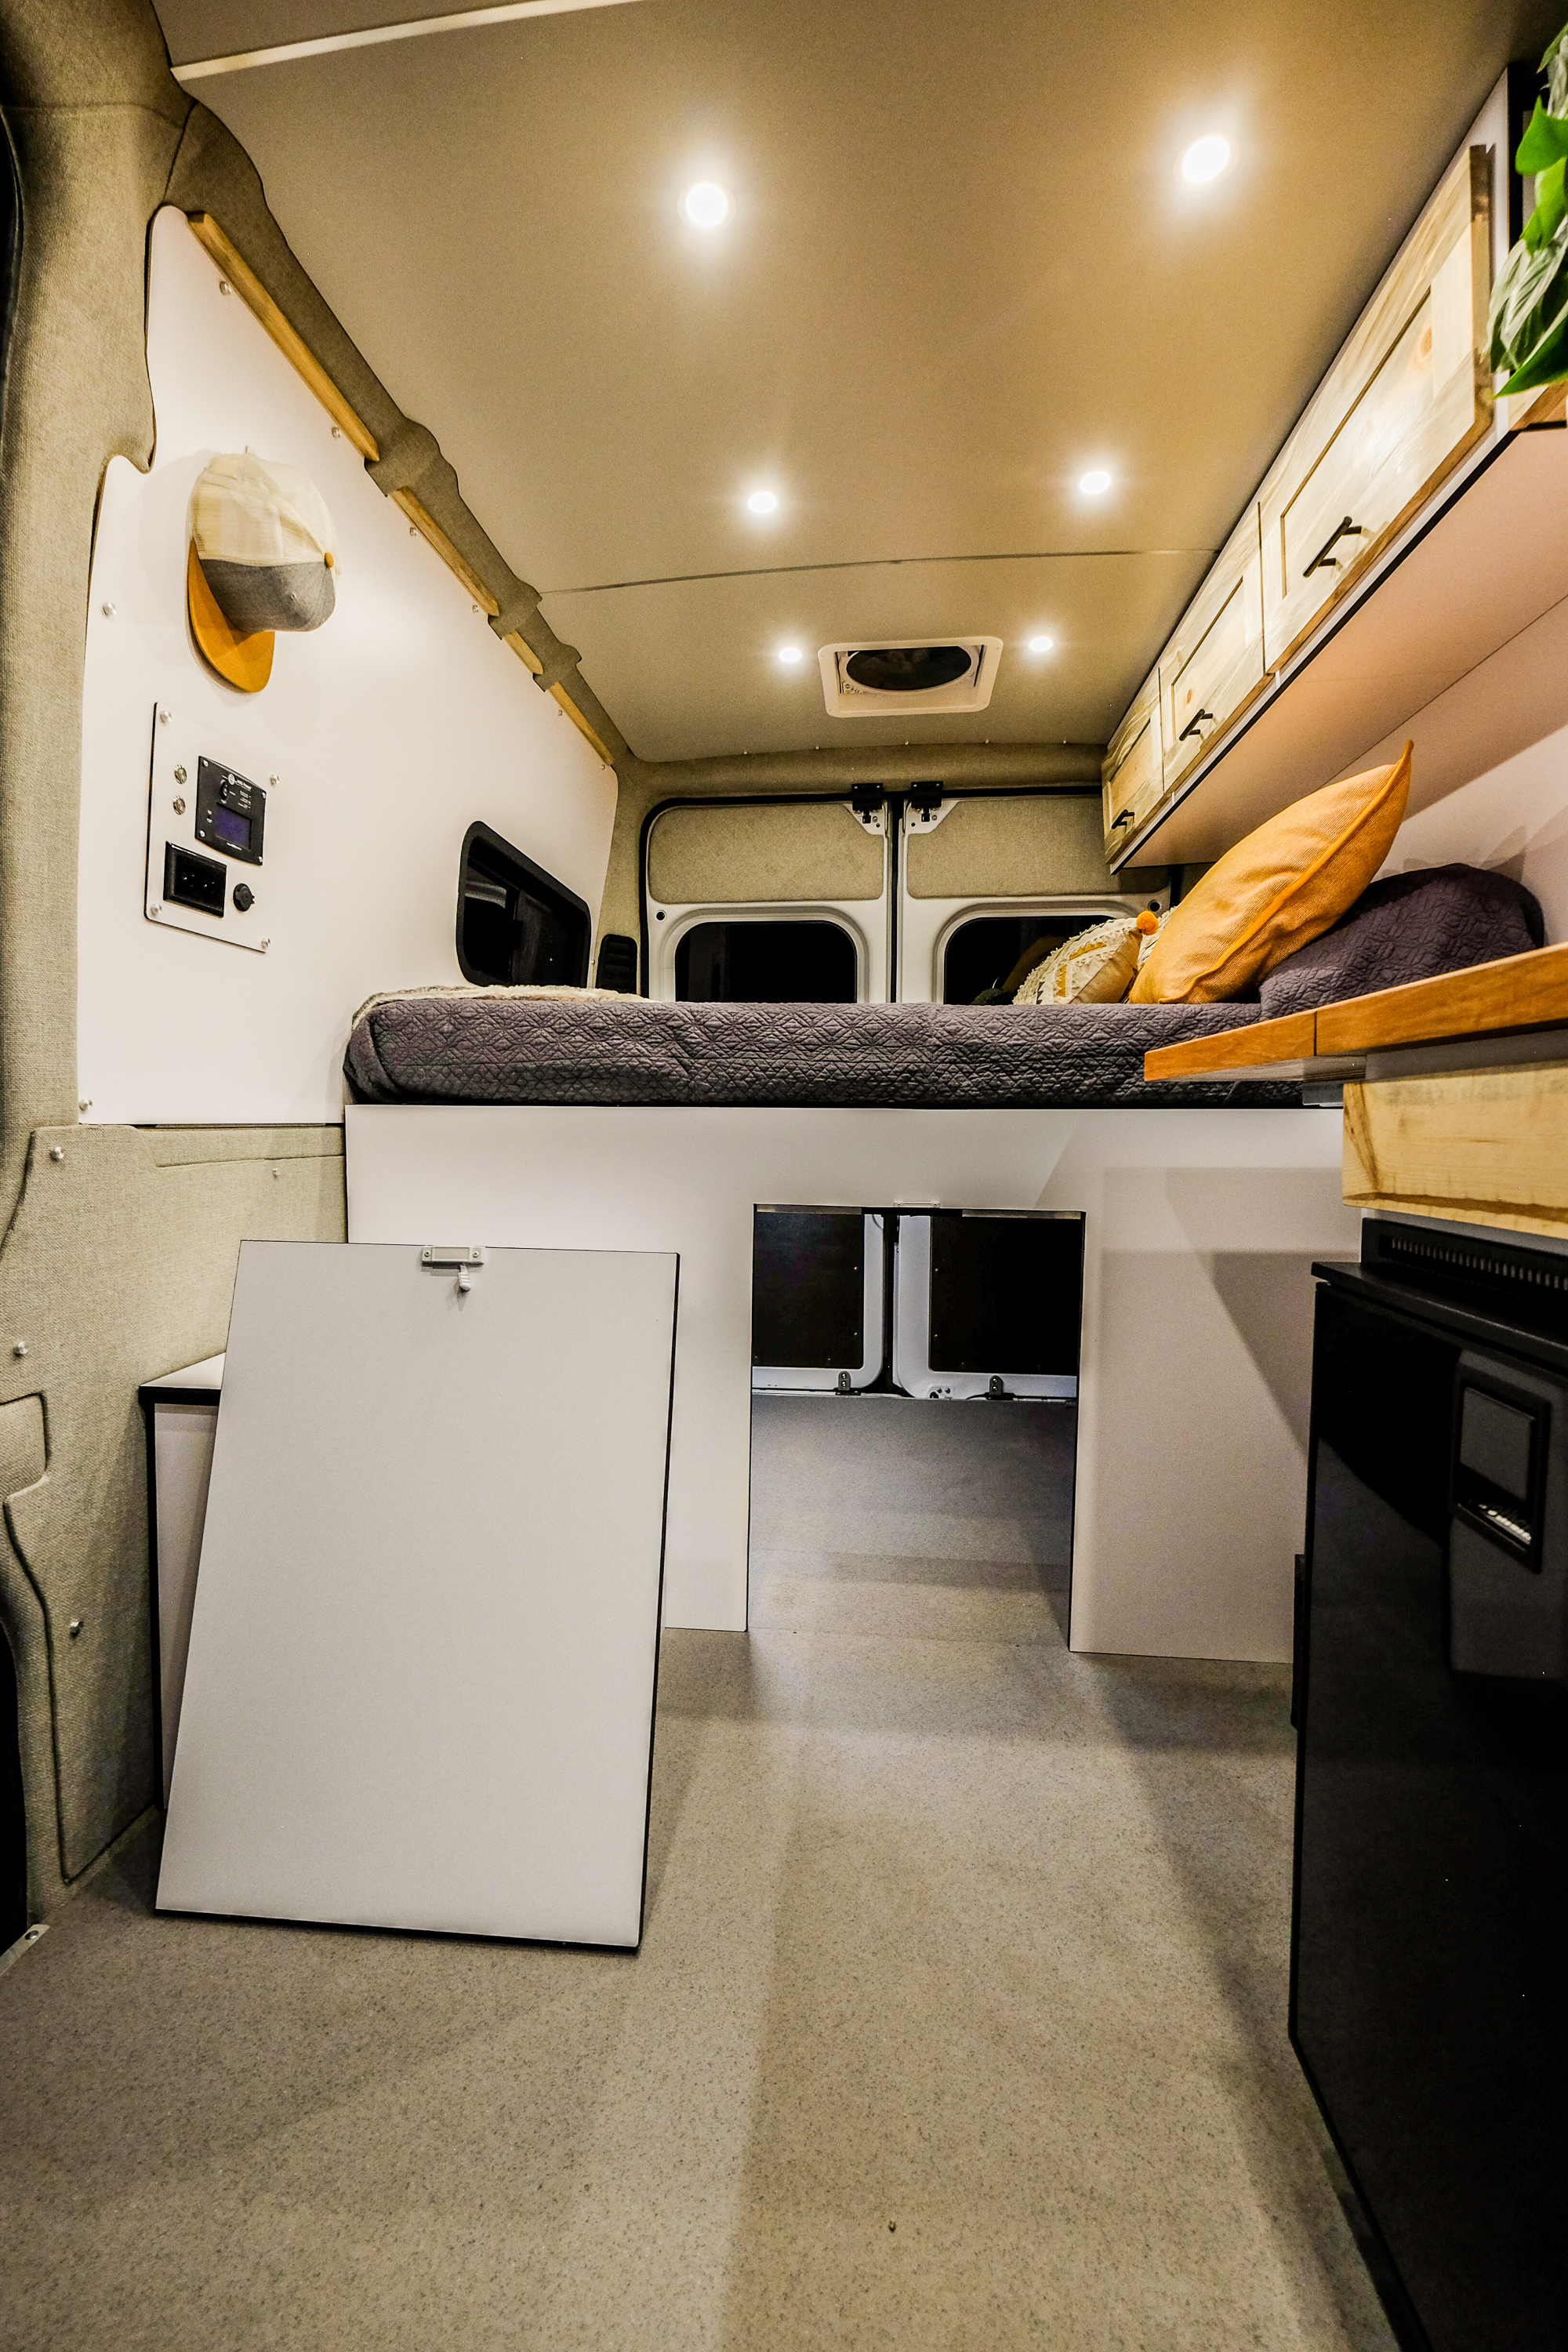 Ponderosa: Vanlife Customs Bed Platform